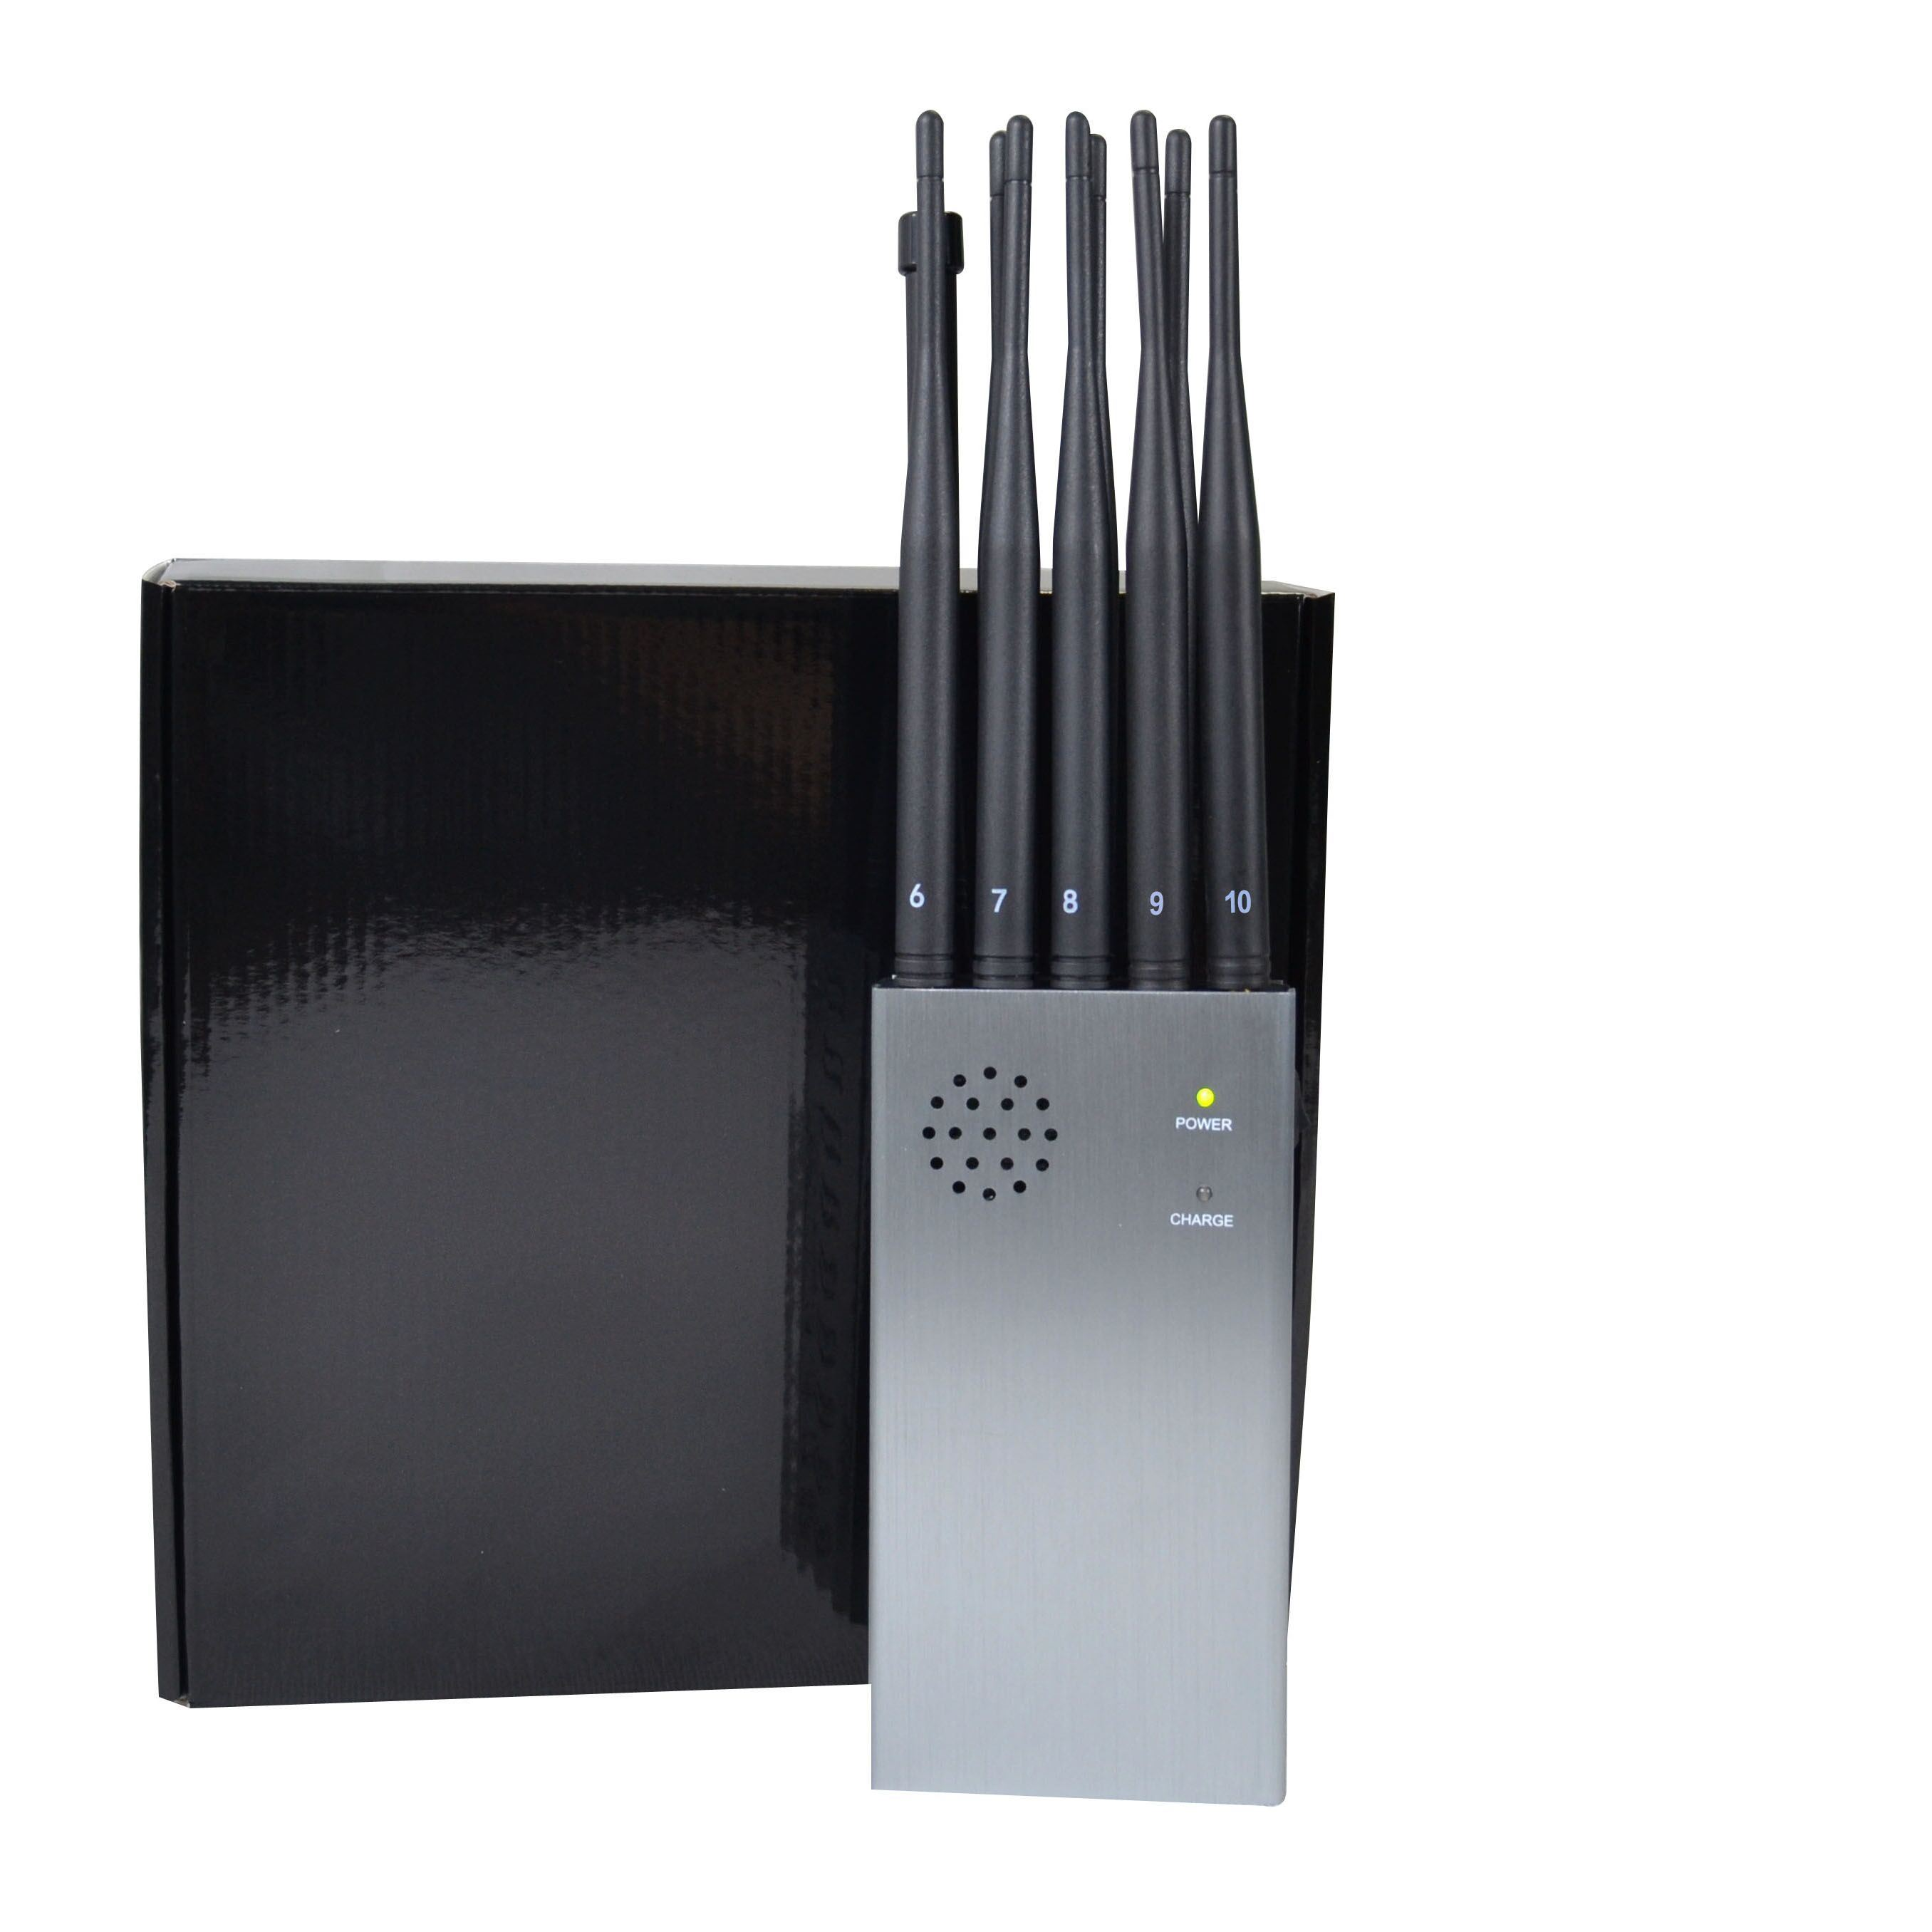 phone jammer london uber - China High Power up to 8000mA Battery Portable Jammer for Military Using Including Lojack, 3G 4G 2g 5g Remote Control GPS Signals - China 8000mA Battery Jammer, Large Volume Power Signal Blocker